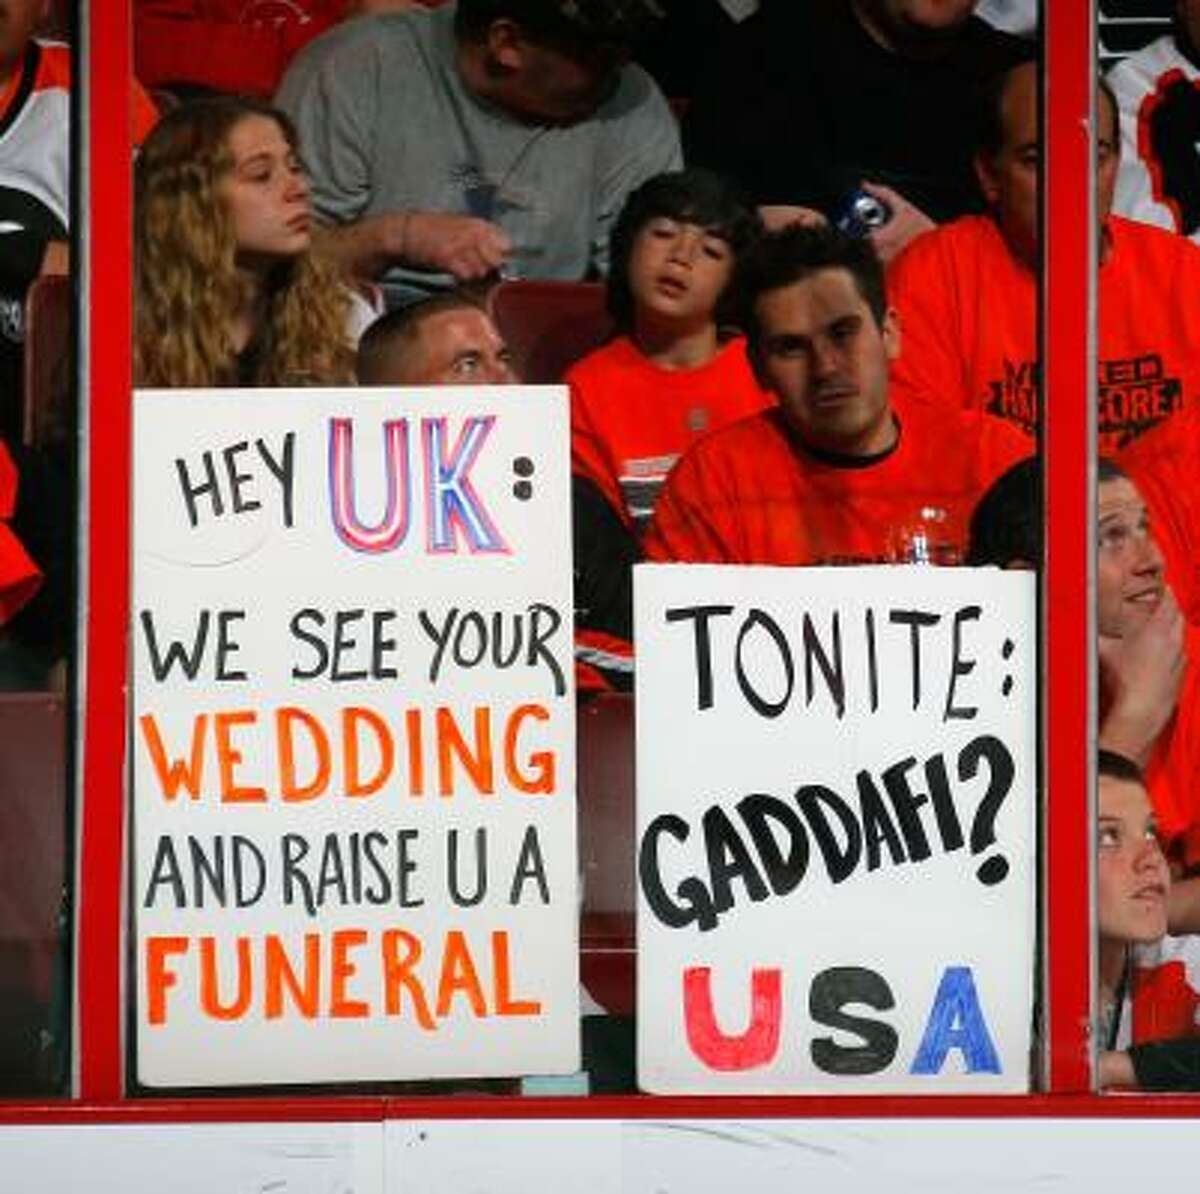 Philadelphia fans shows off witty signs at the Flyers' game.